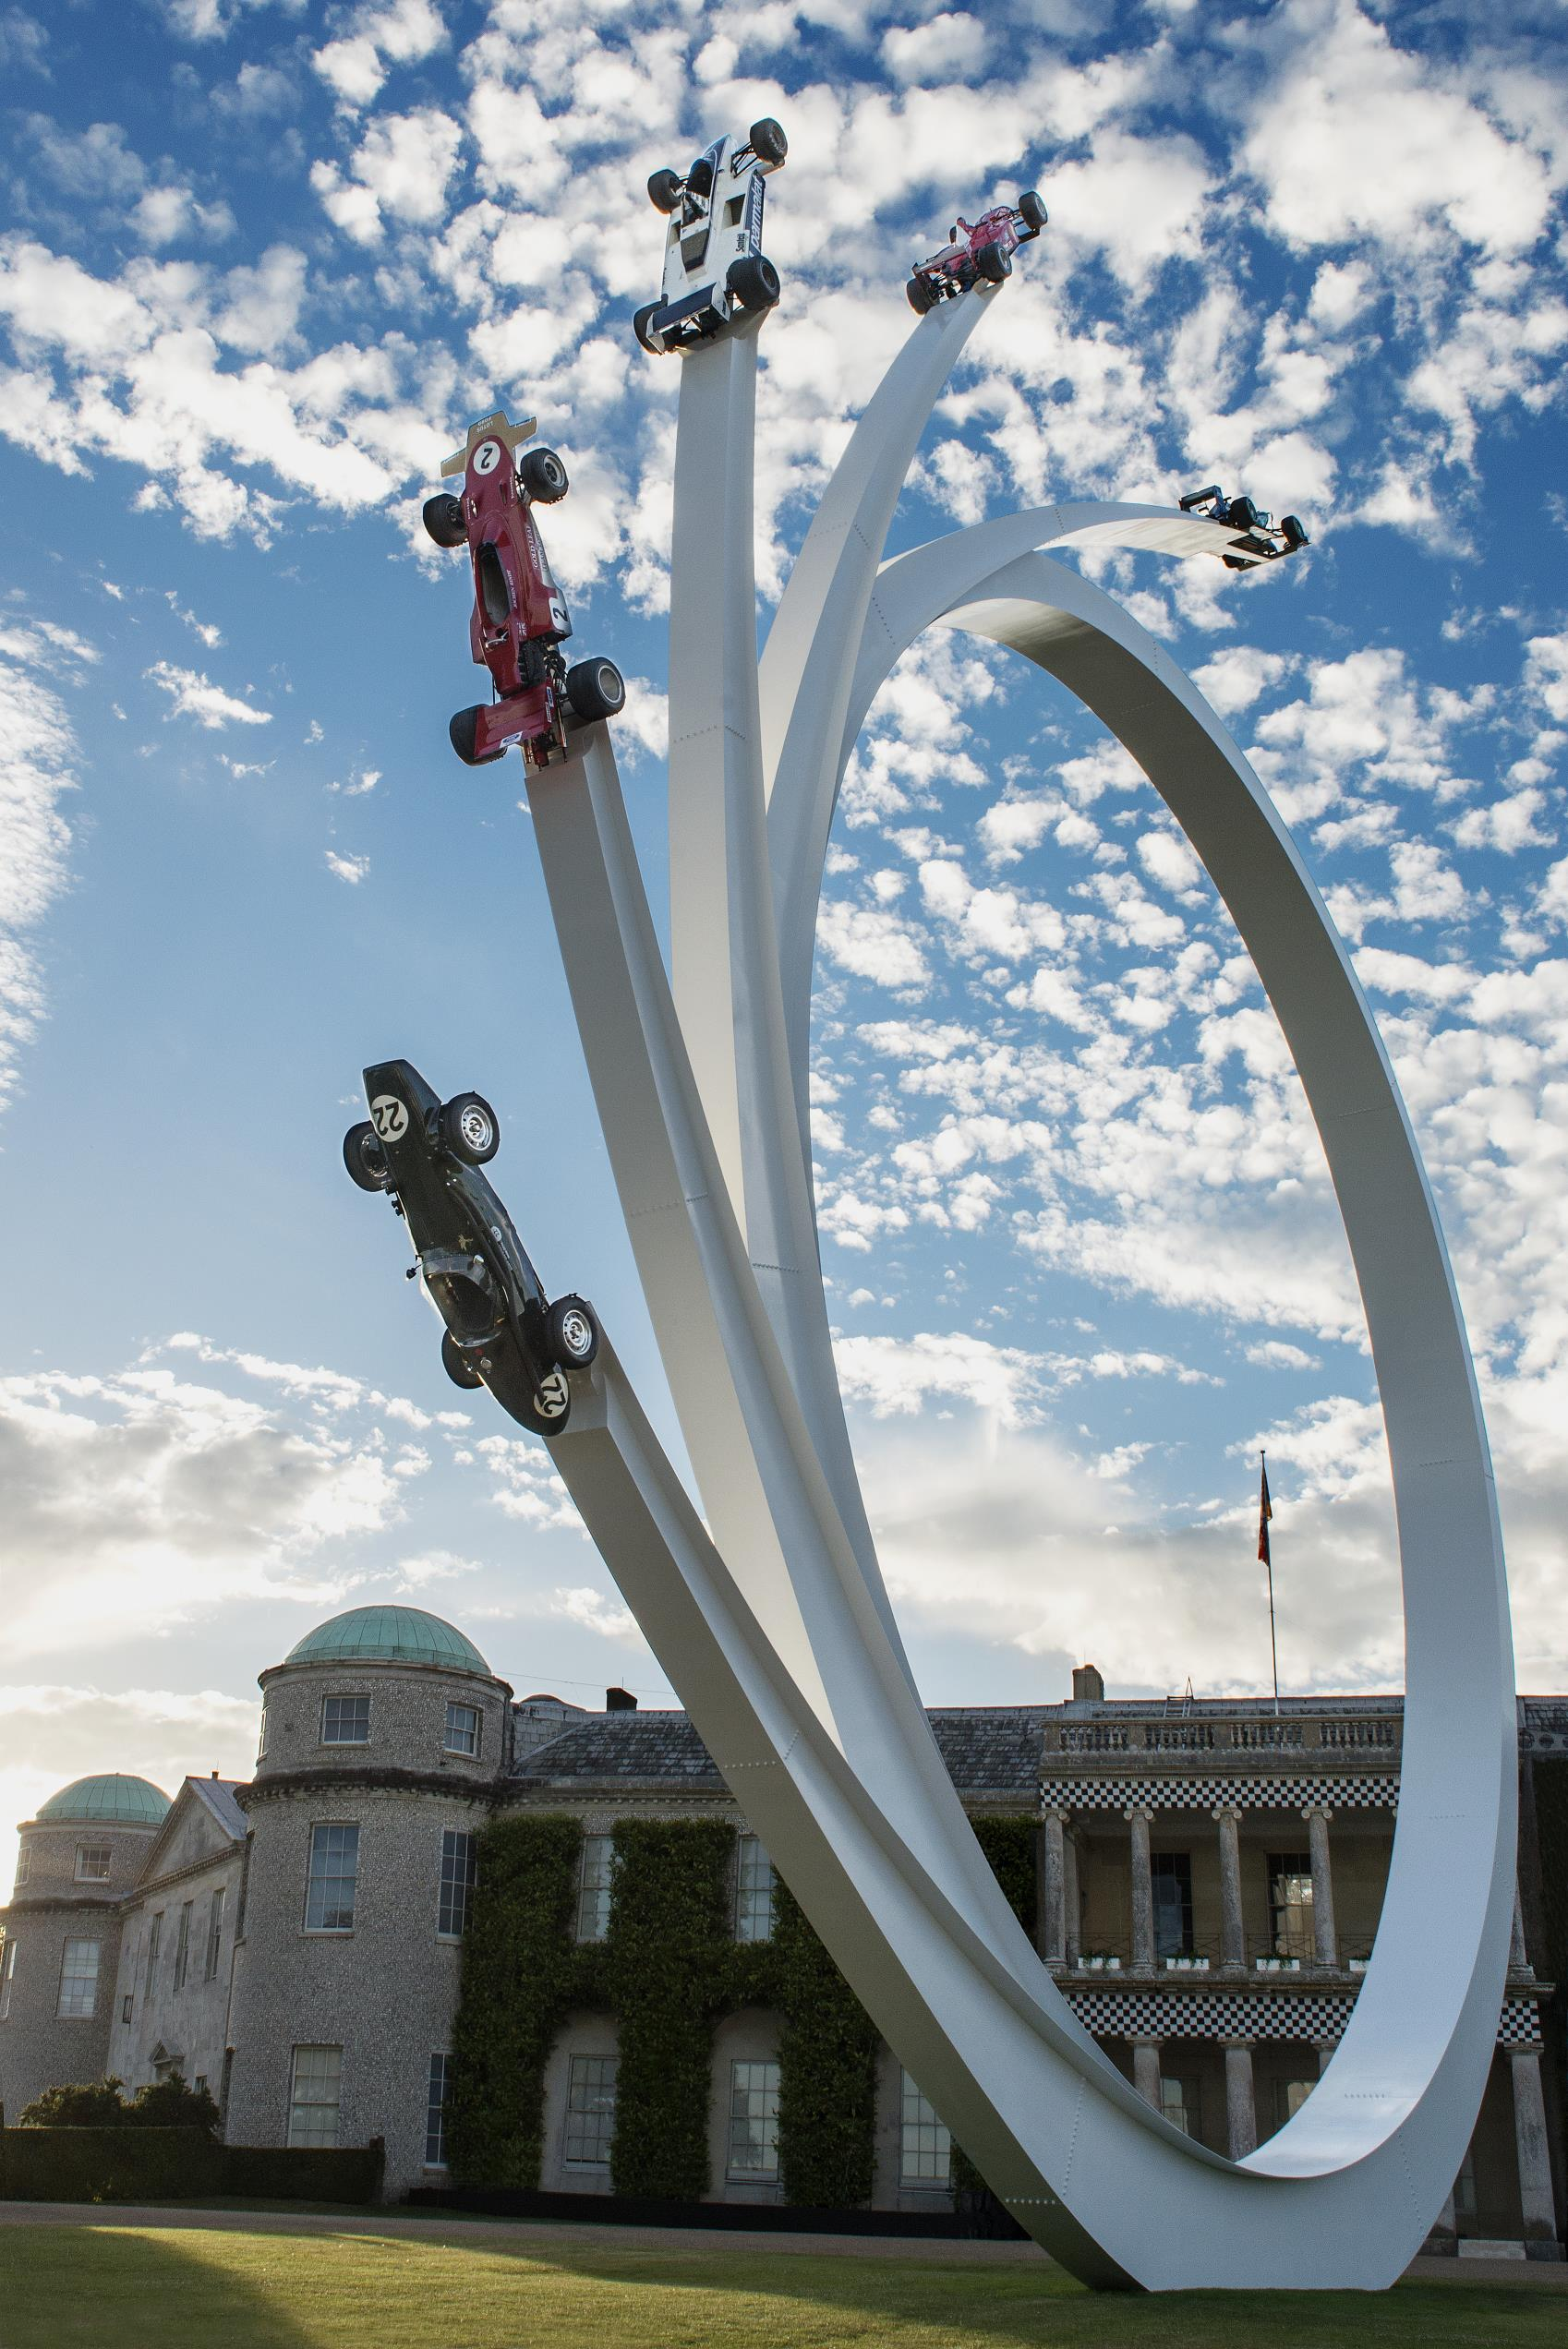 2017 goodwood festival of speed opens with sculpture honoring bernie ecclestone. Black Bedroom Furniture Sets. Home Design Ideas